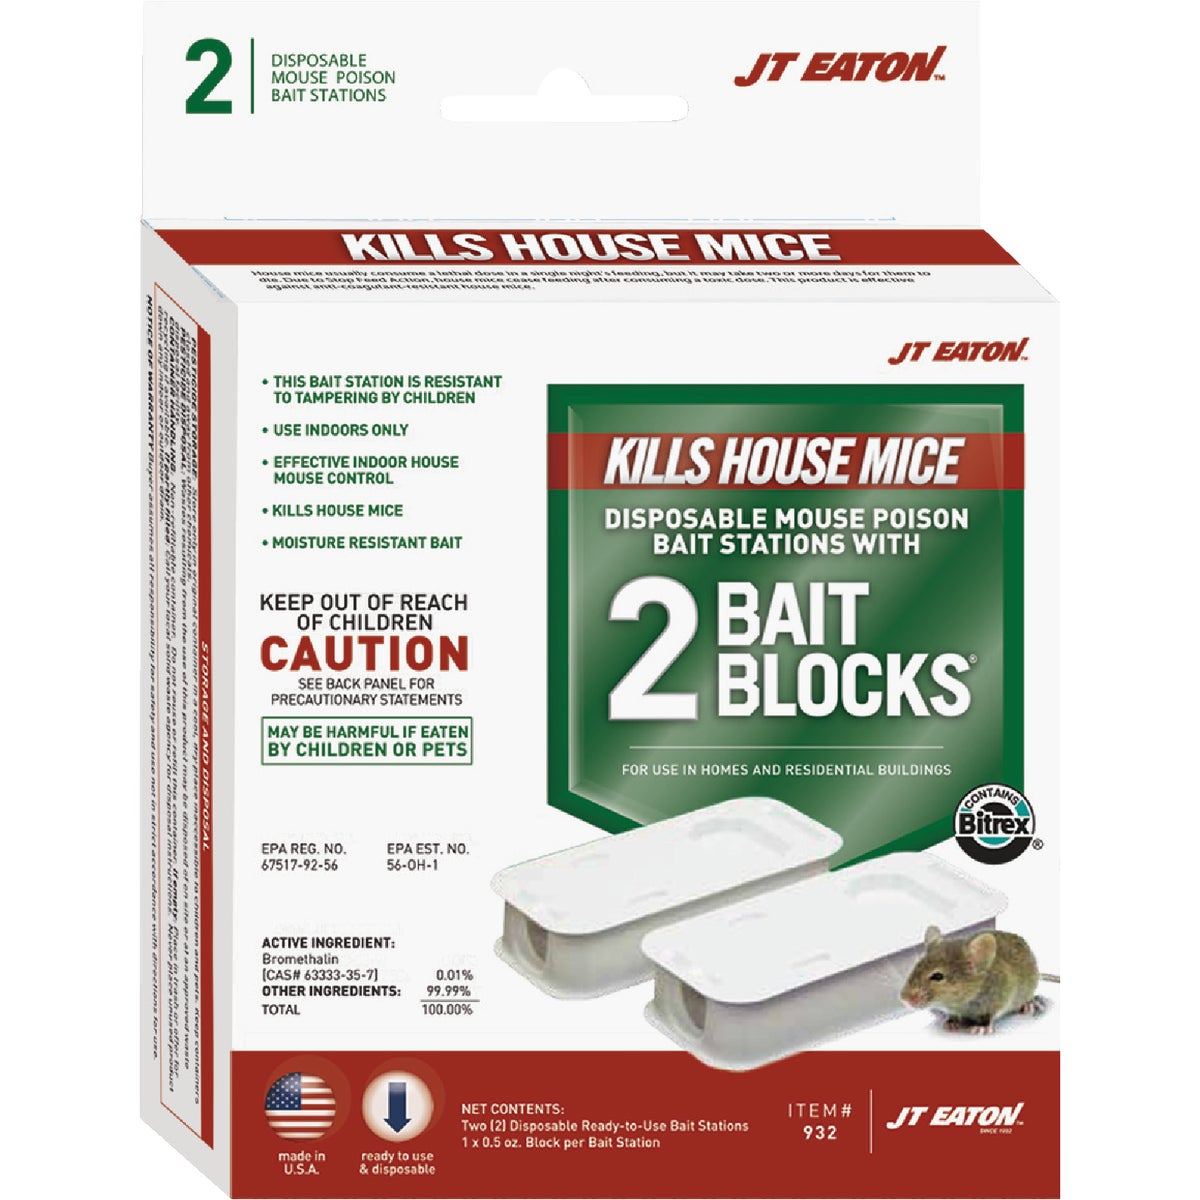 2PK MOUSE BAIT STATION